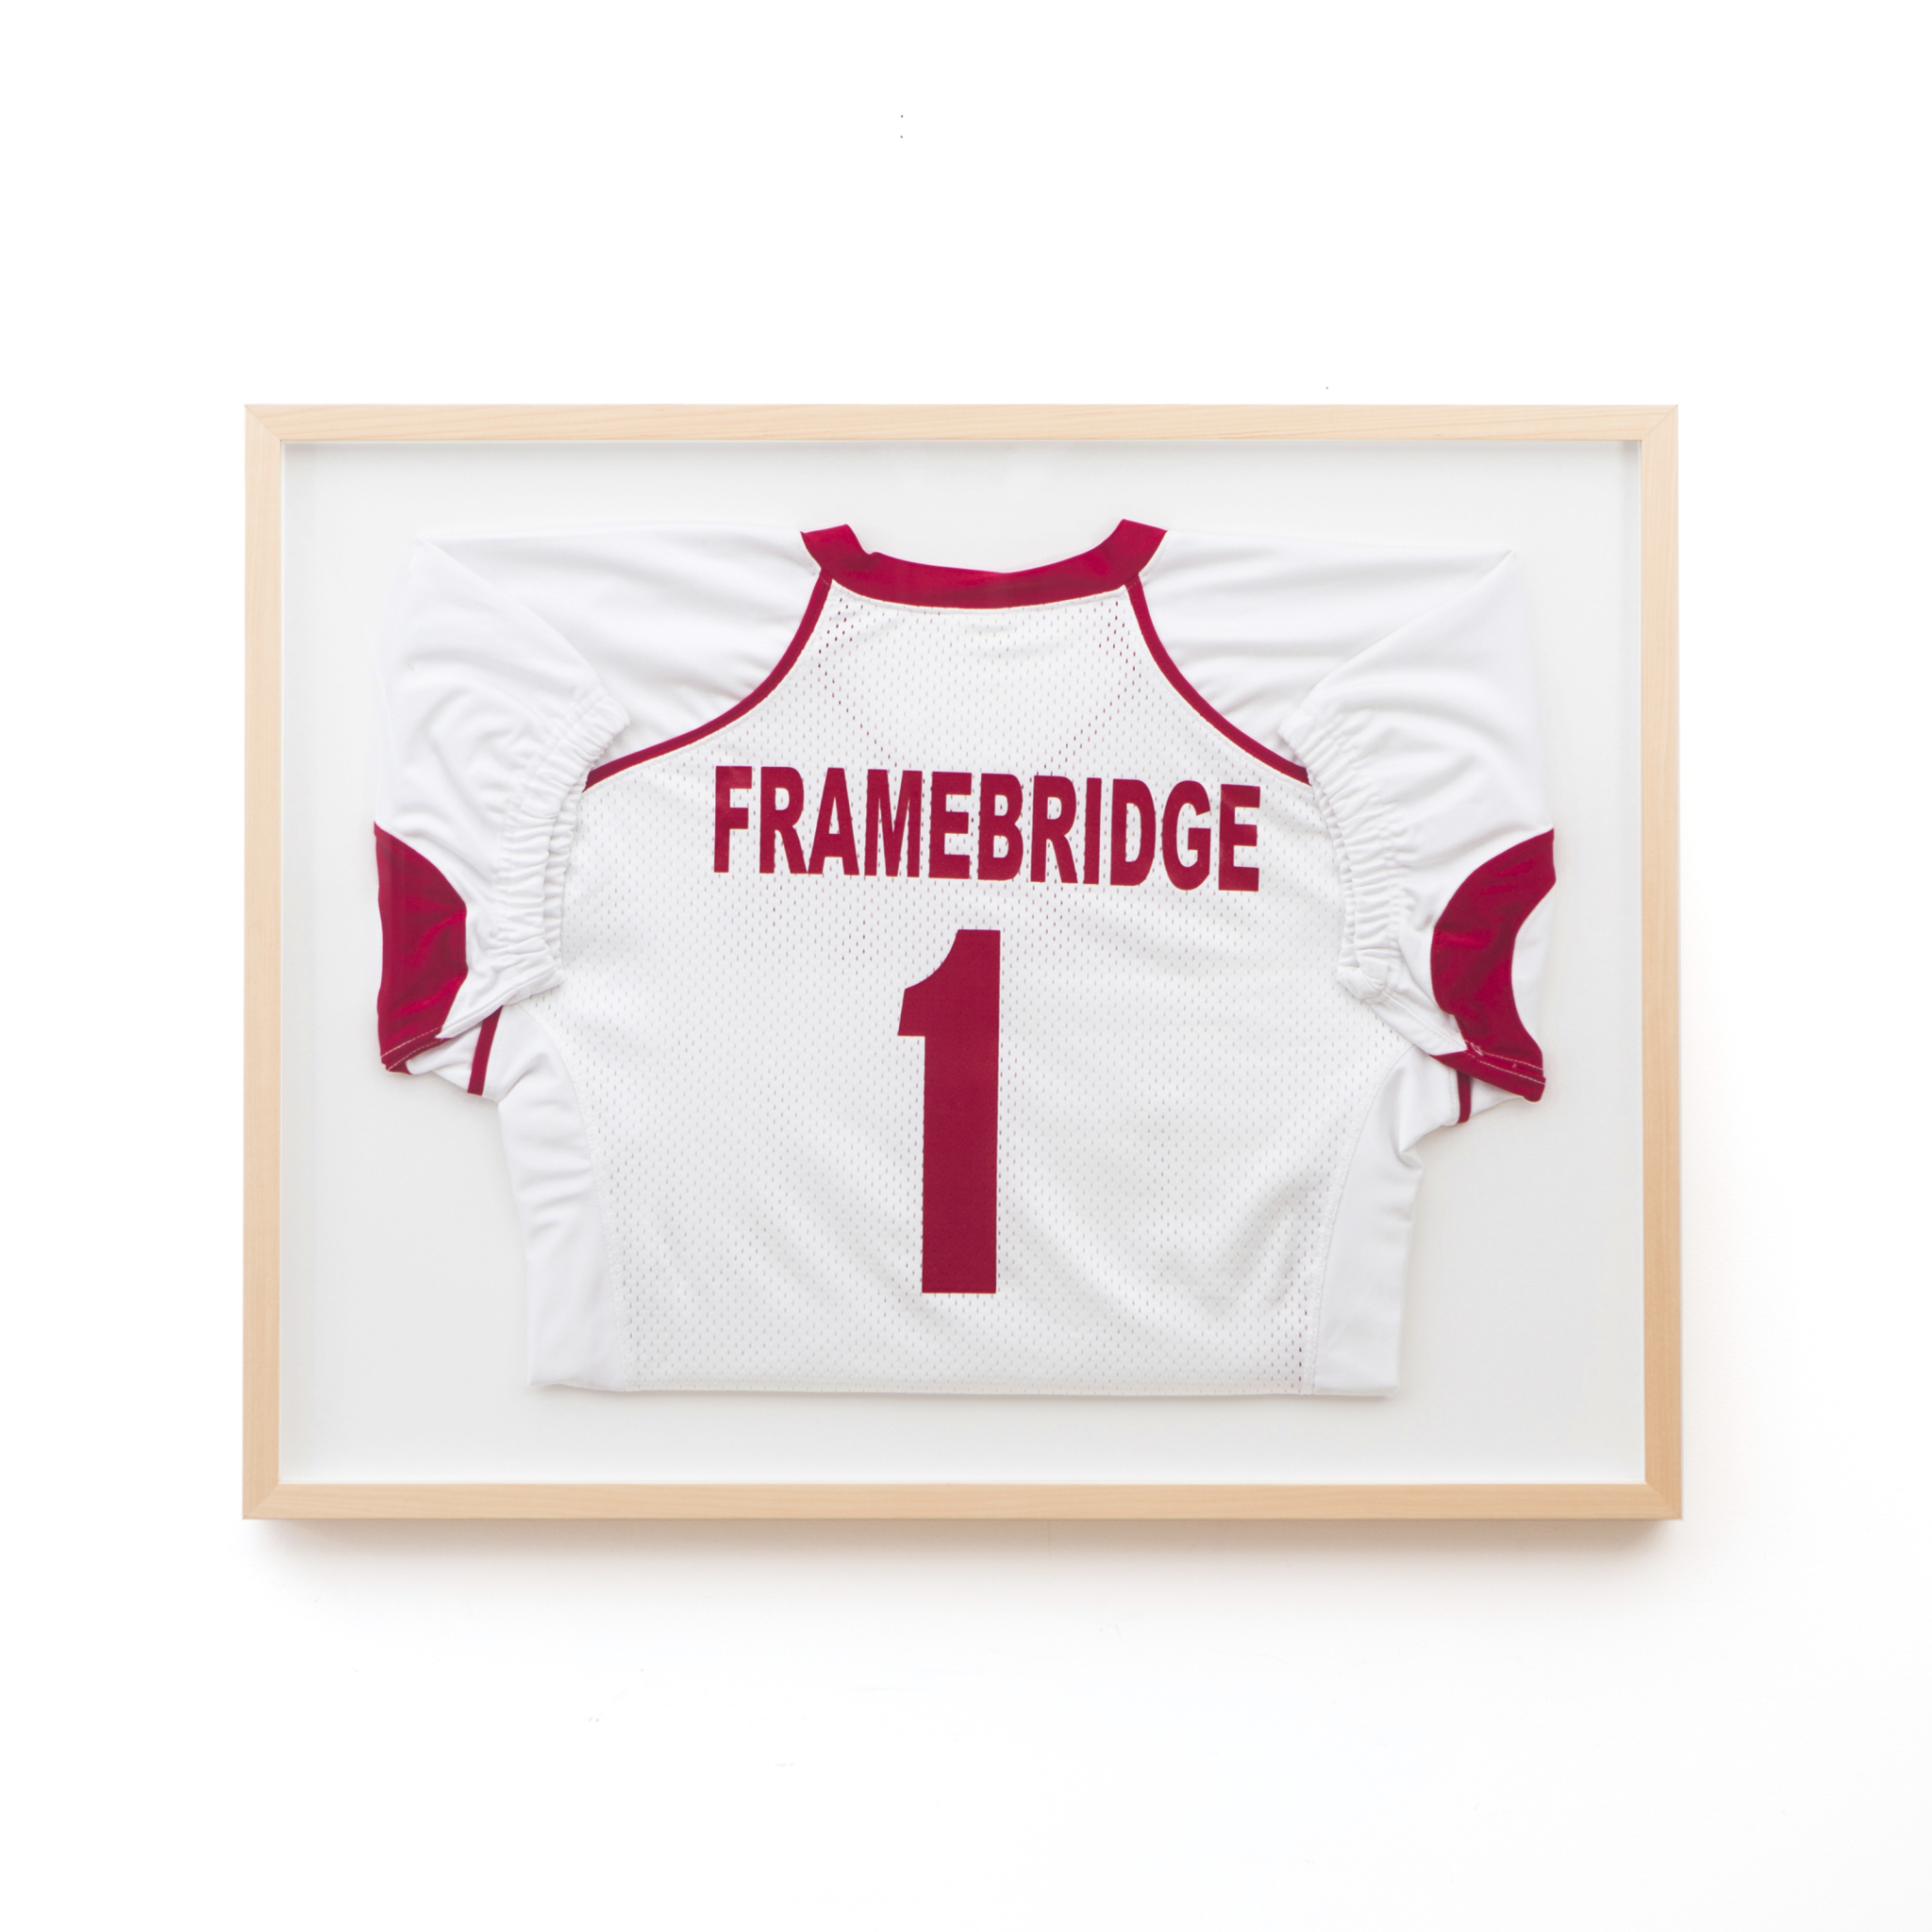 How To Frame A Jersey >> Jersey Framing Tutorial Made Easy Framebridge Frames